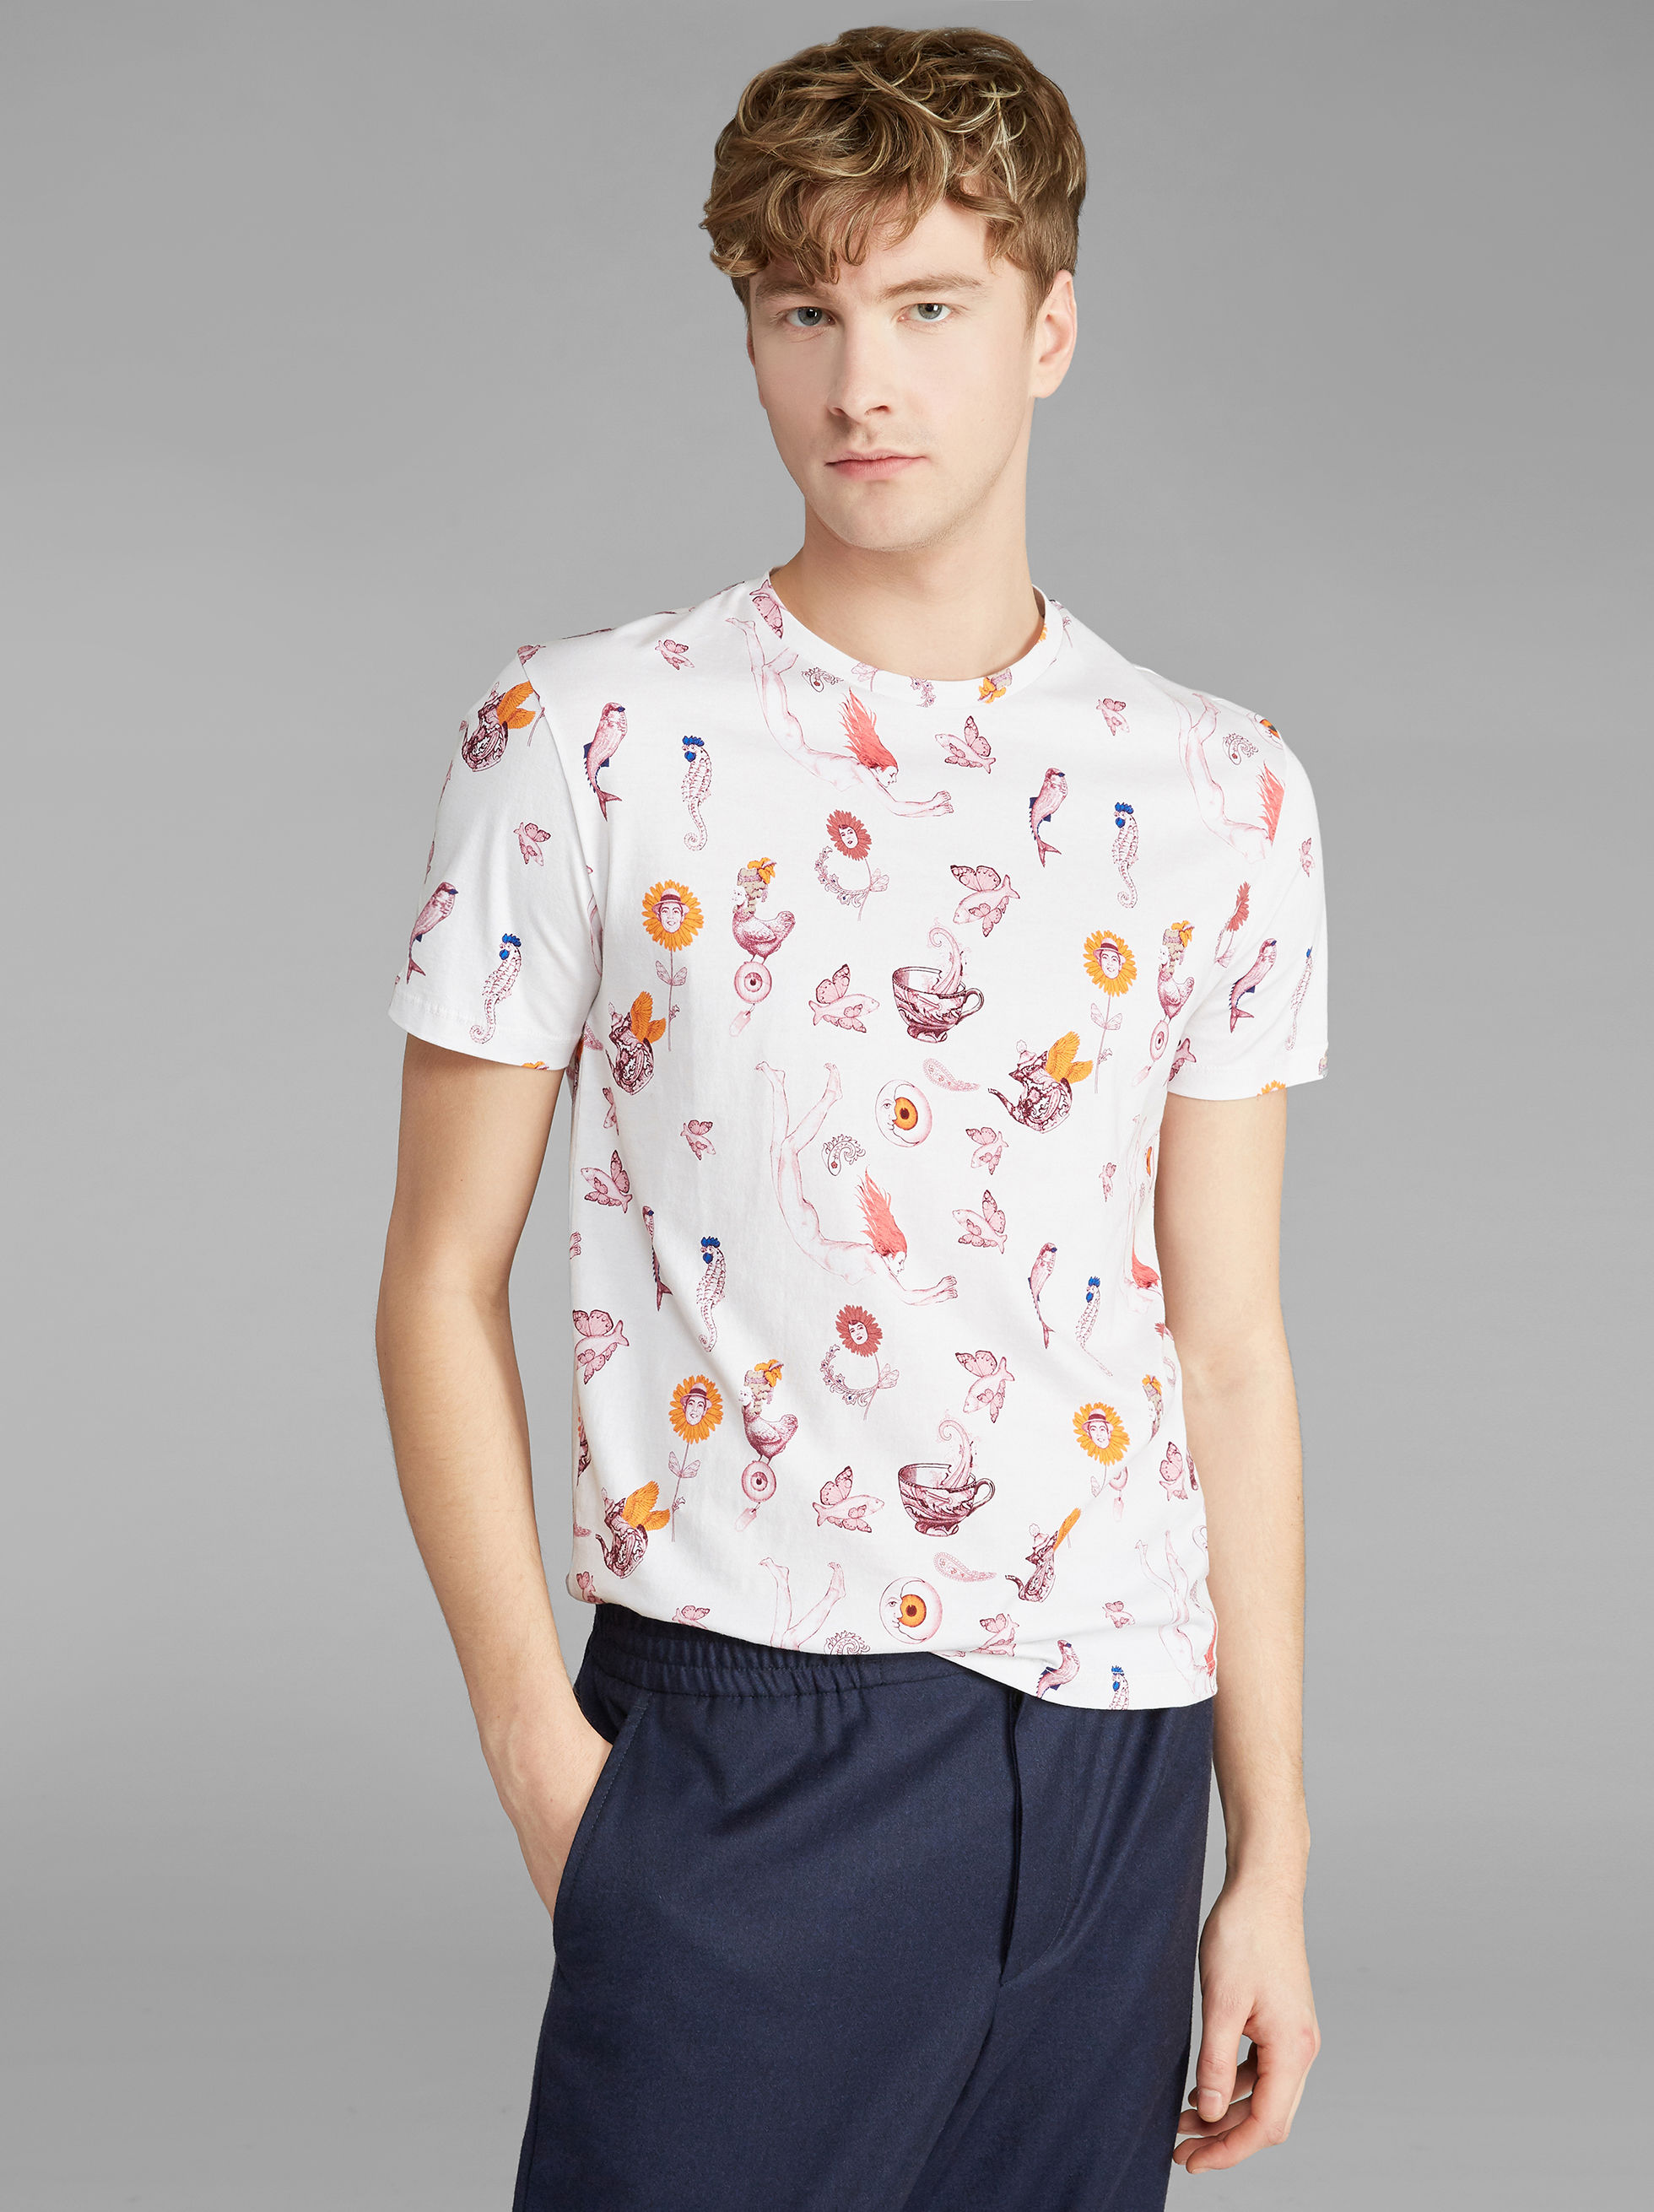 T-SHIRT WITH FANTASTIC ANIMALS PRINT